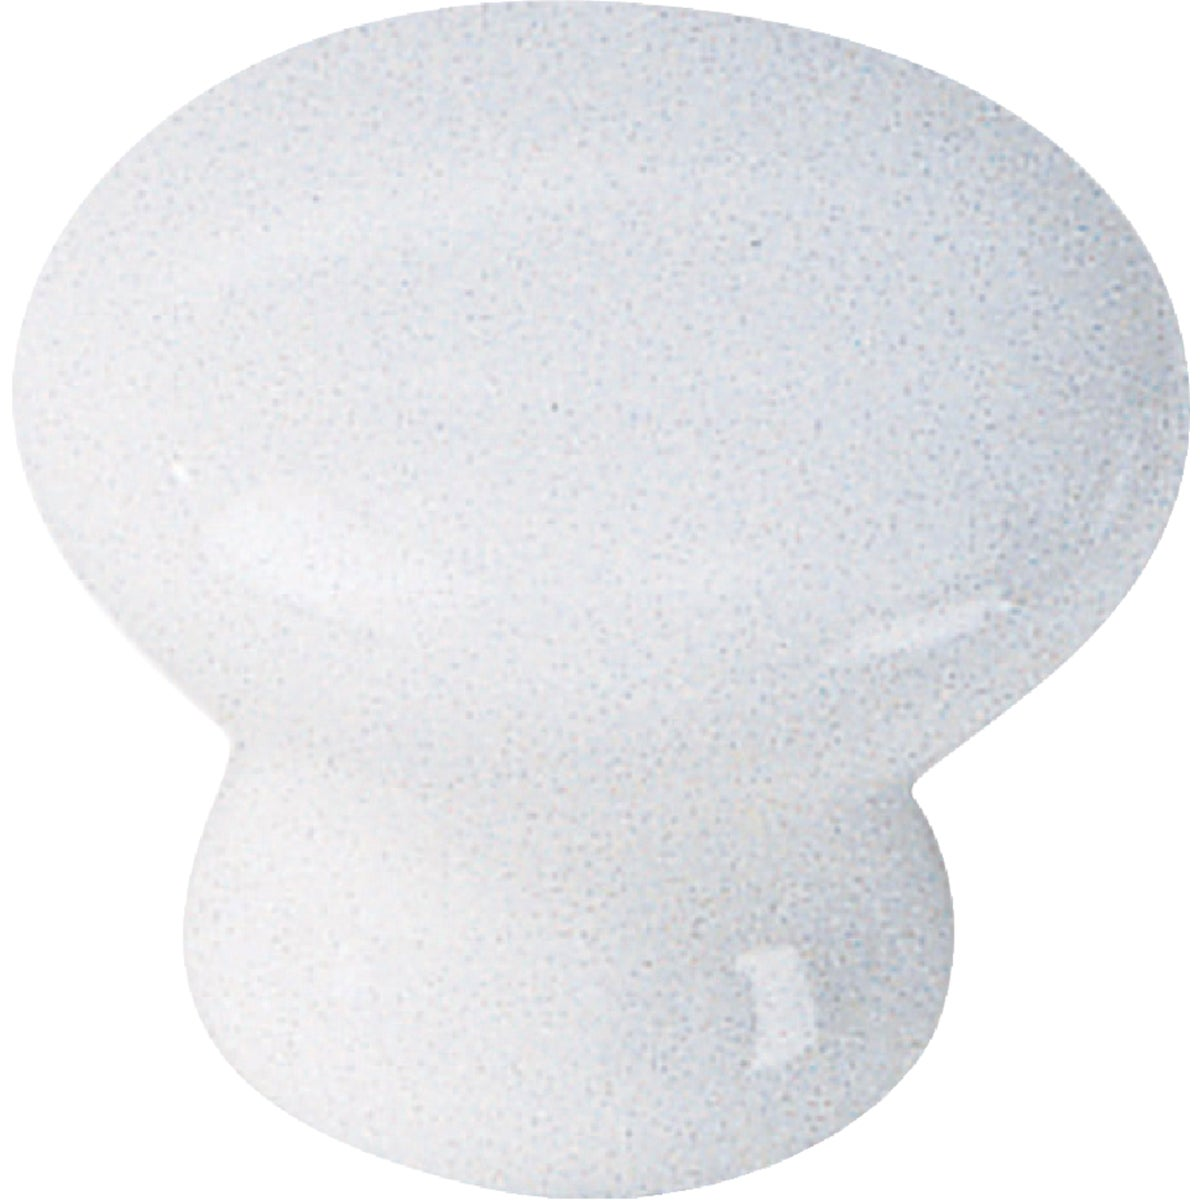 1-3/8 WHT CERAMIC KNOB - 01642 by Laurey Co